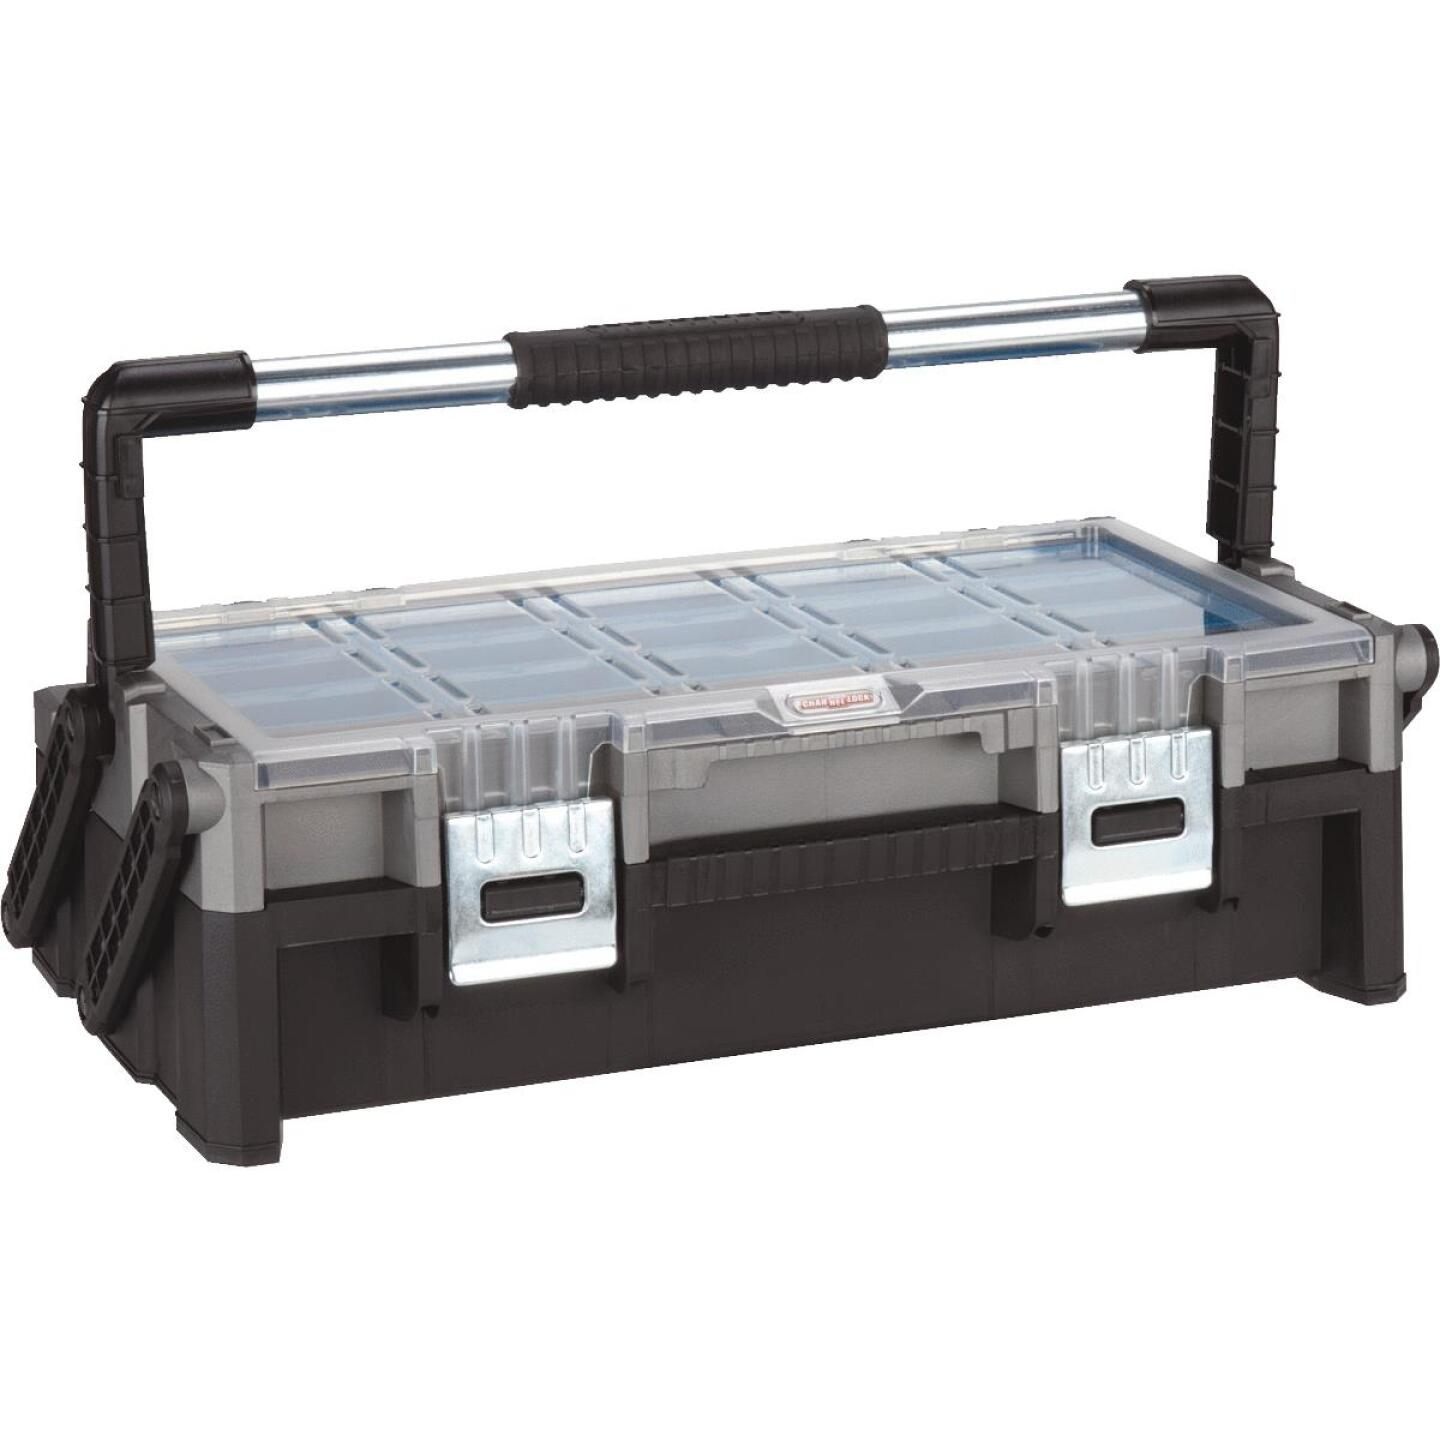 Channellock 22.5 In. Cantilever Parts Organizer Storage Box Image 7